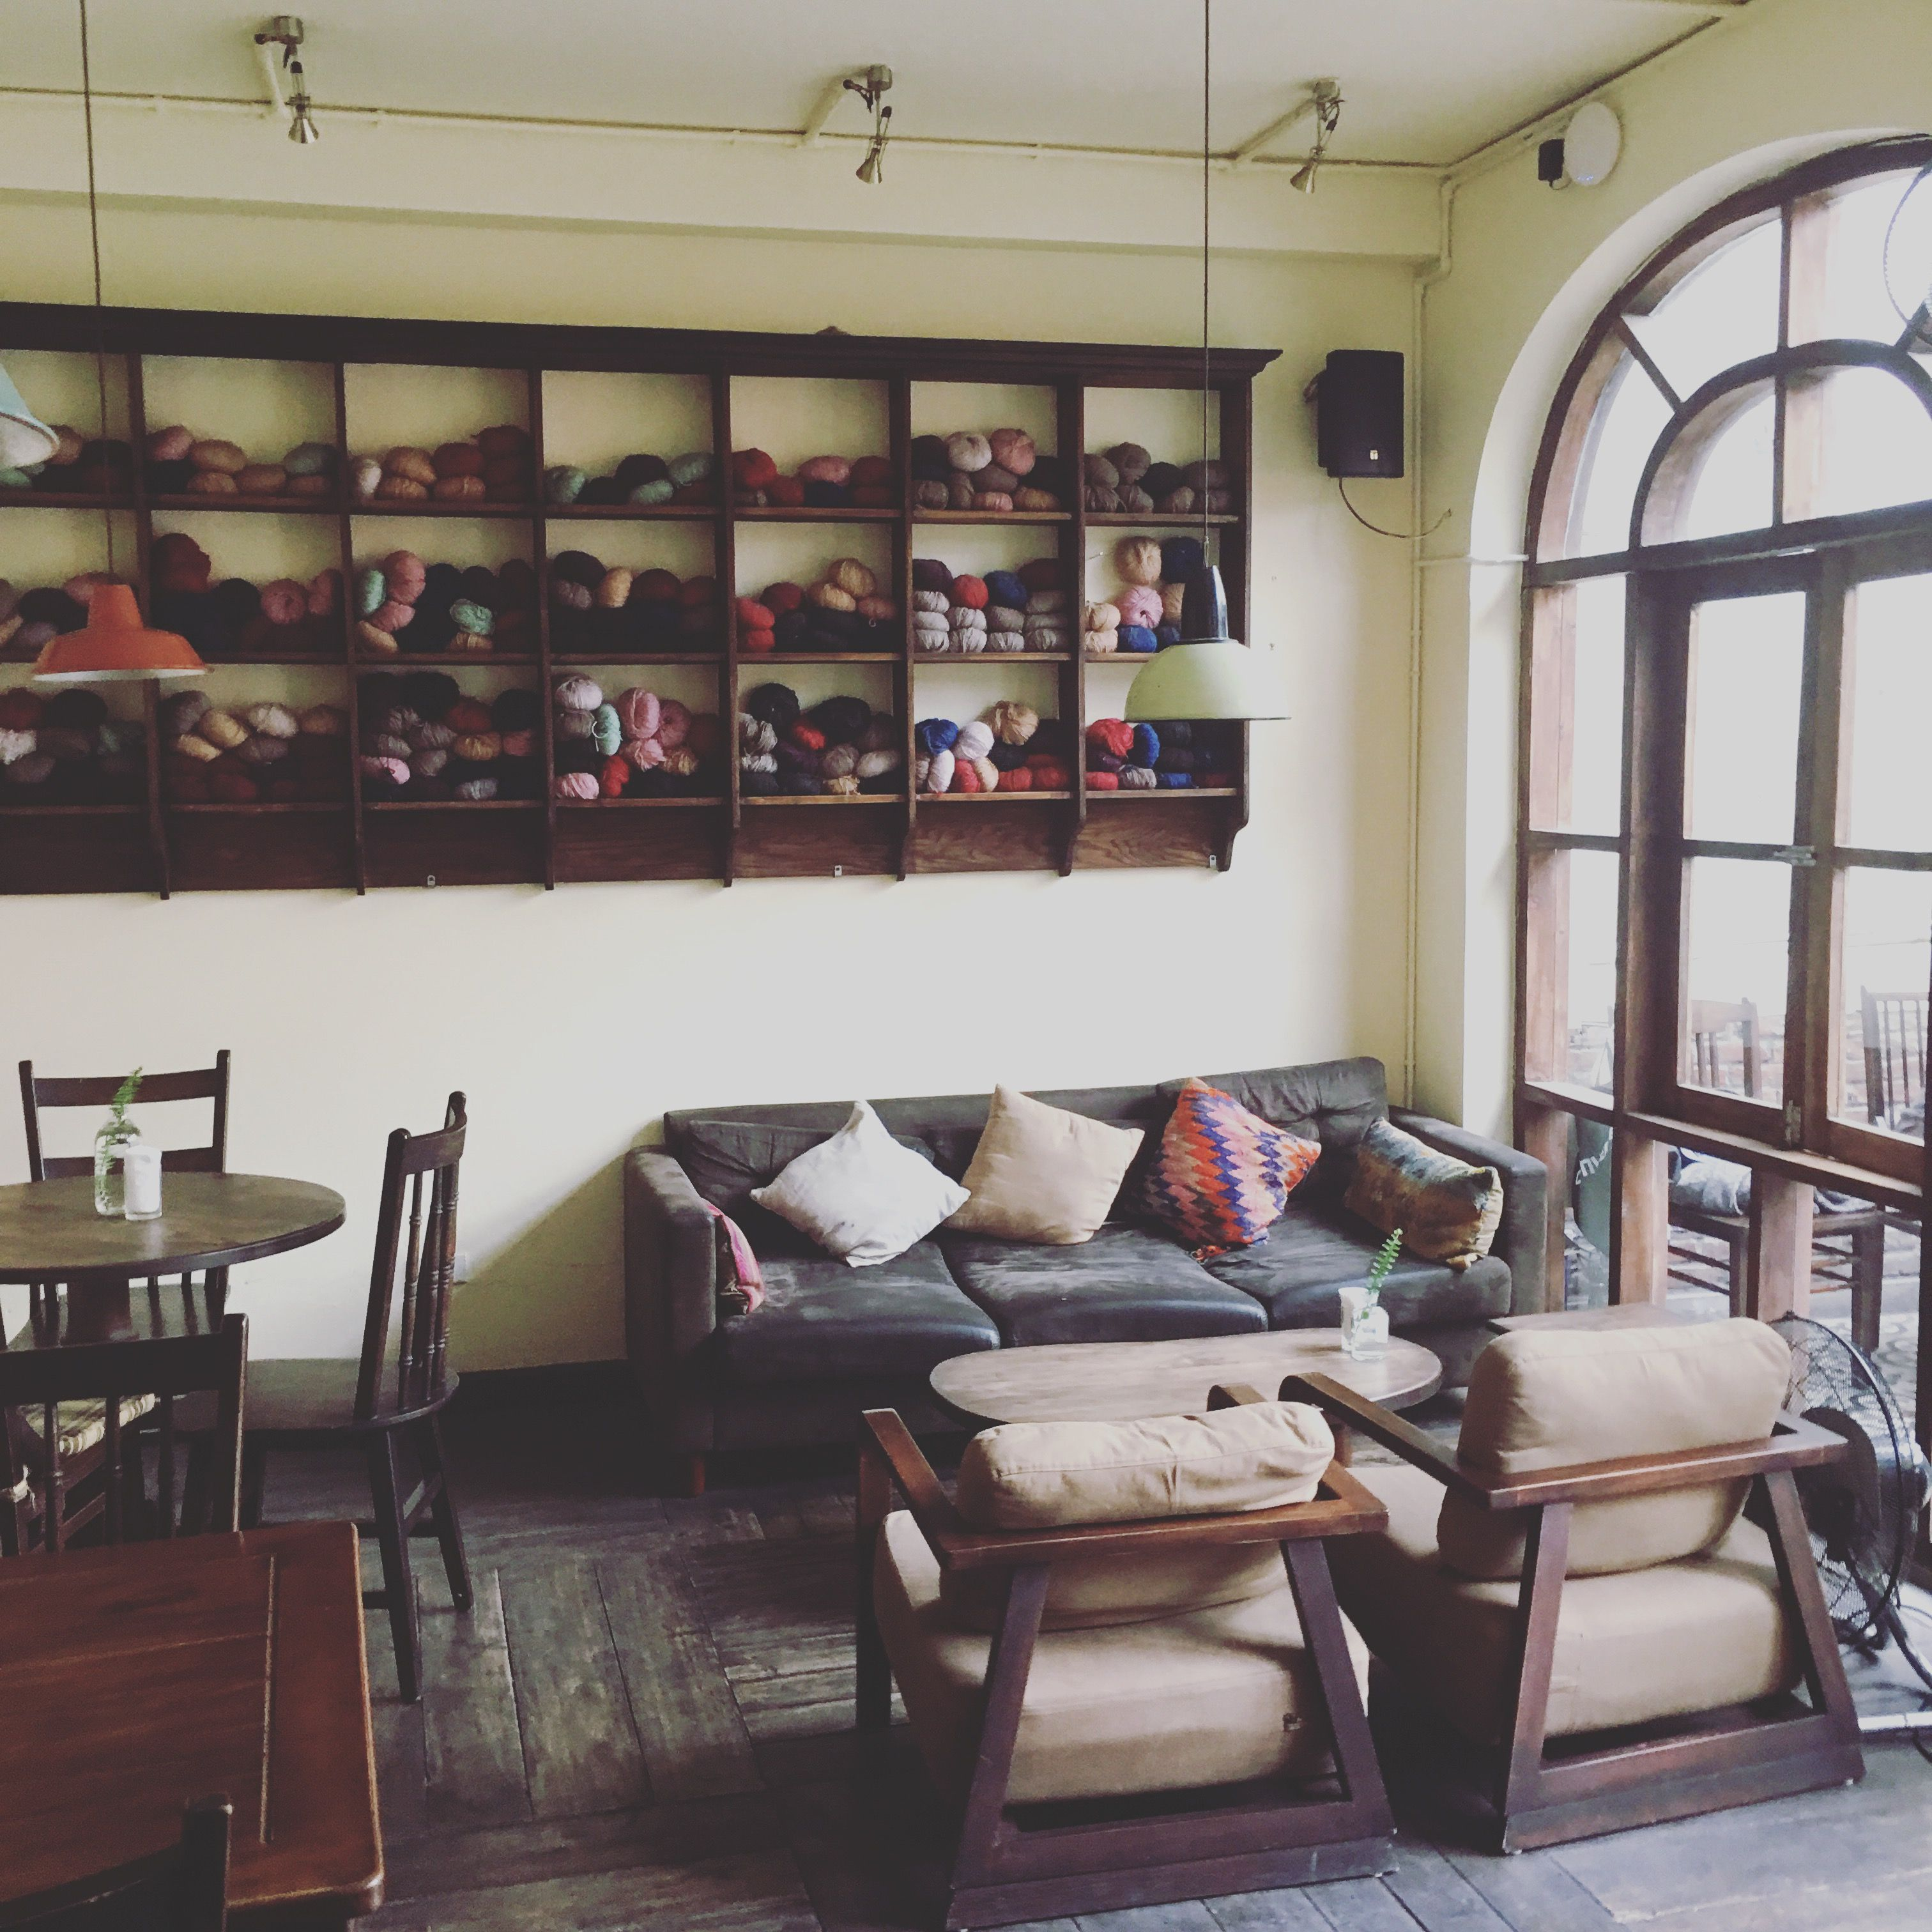 Xofa Cafe Hanoi When I Need To Be At A Quiet And Peaceful Place Peaceful Places Home Decor Decor